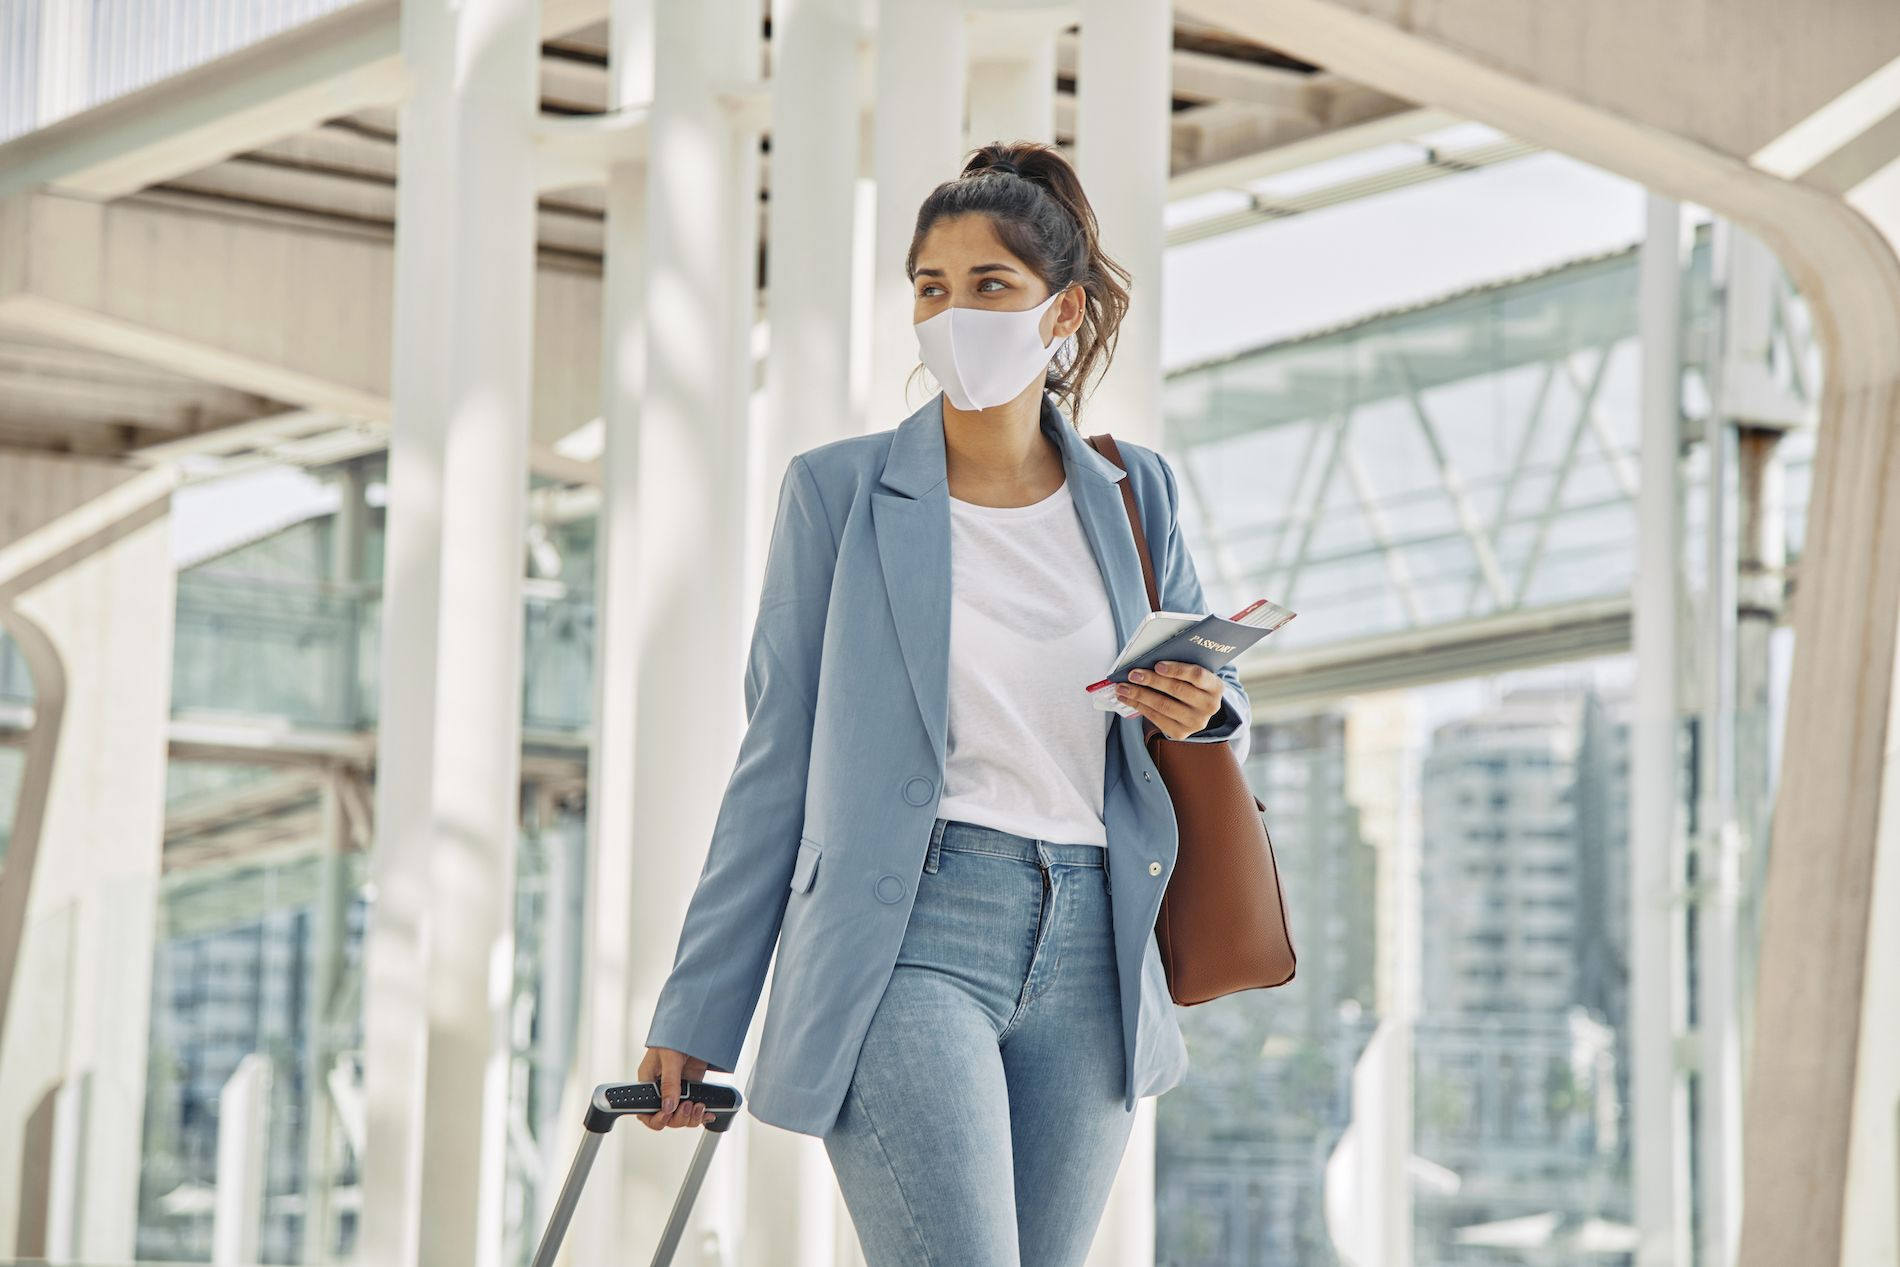 woman-with-luggage-and-medical-mask-at-the-airport-during-pandemic.jpg